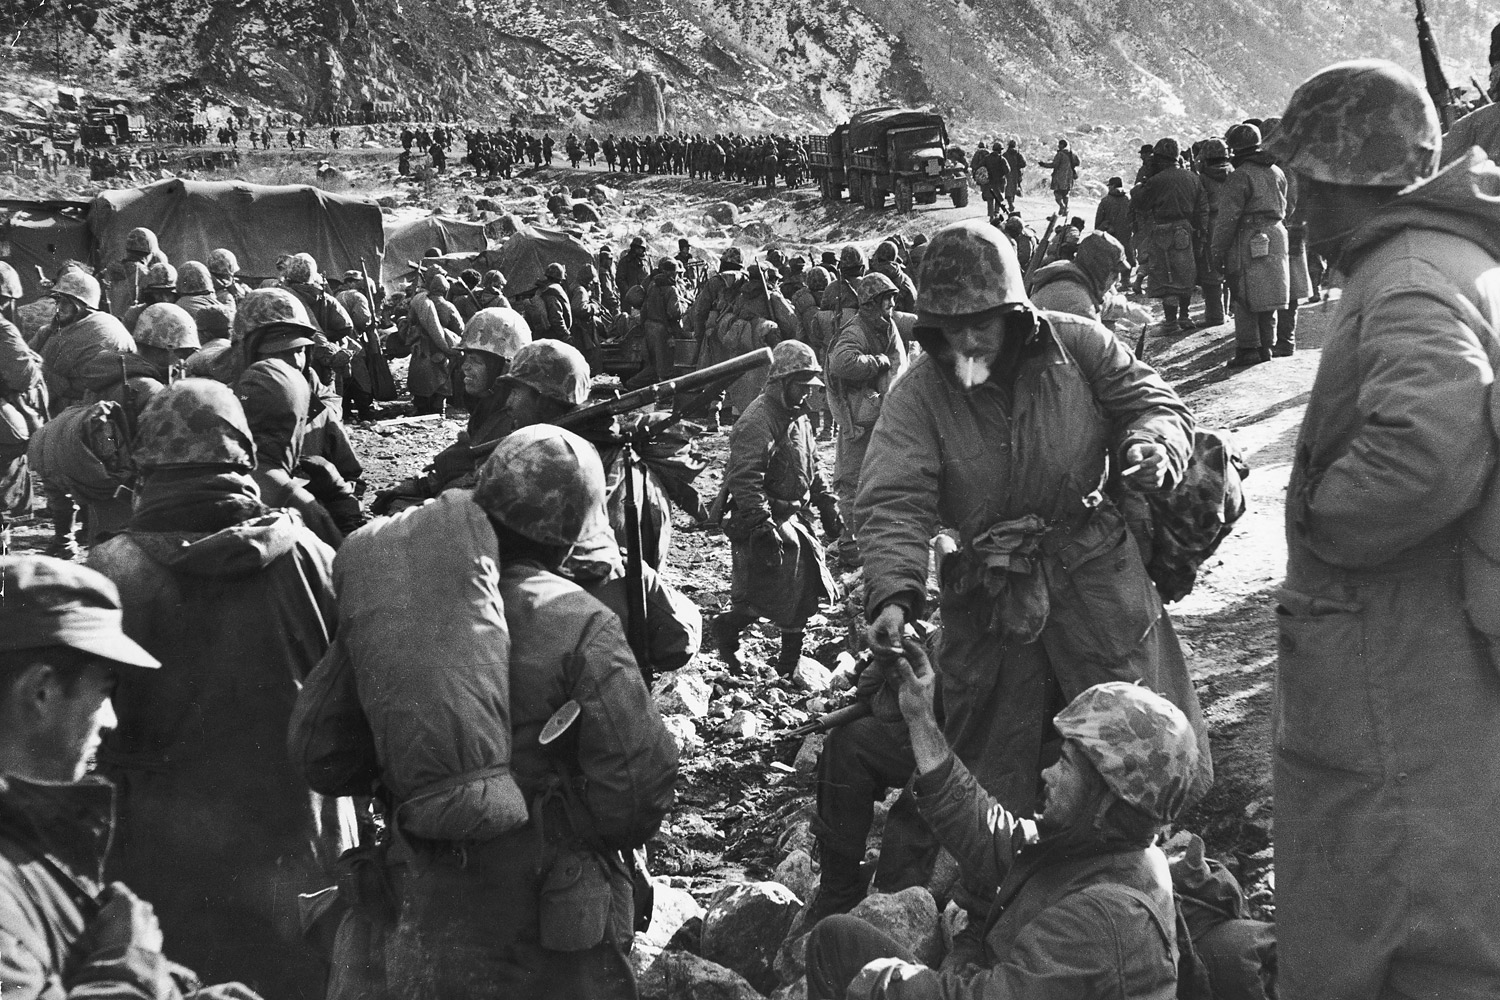 U.S. Marines of 1st Division resting after making it  through canyon road known as  Nightmare Alley  during their retreat from the Changjin Reservoir in December 1950.